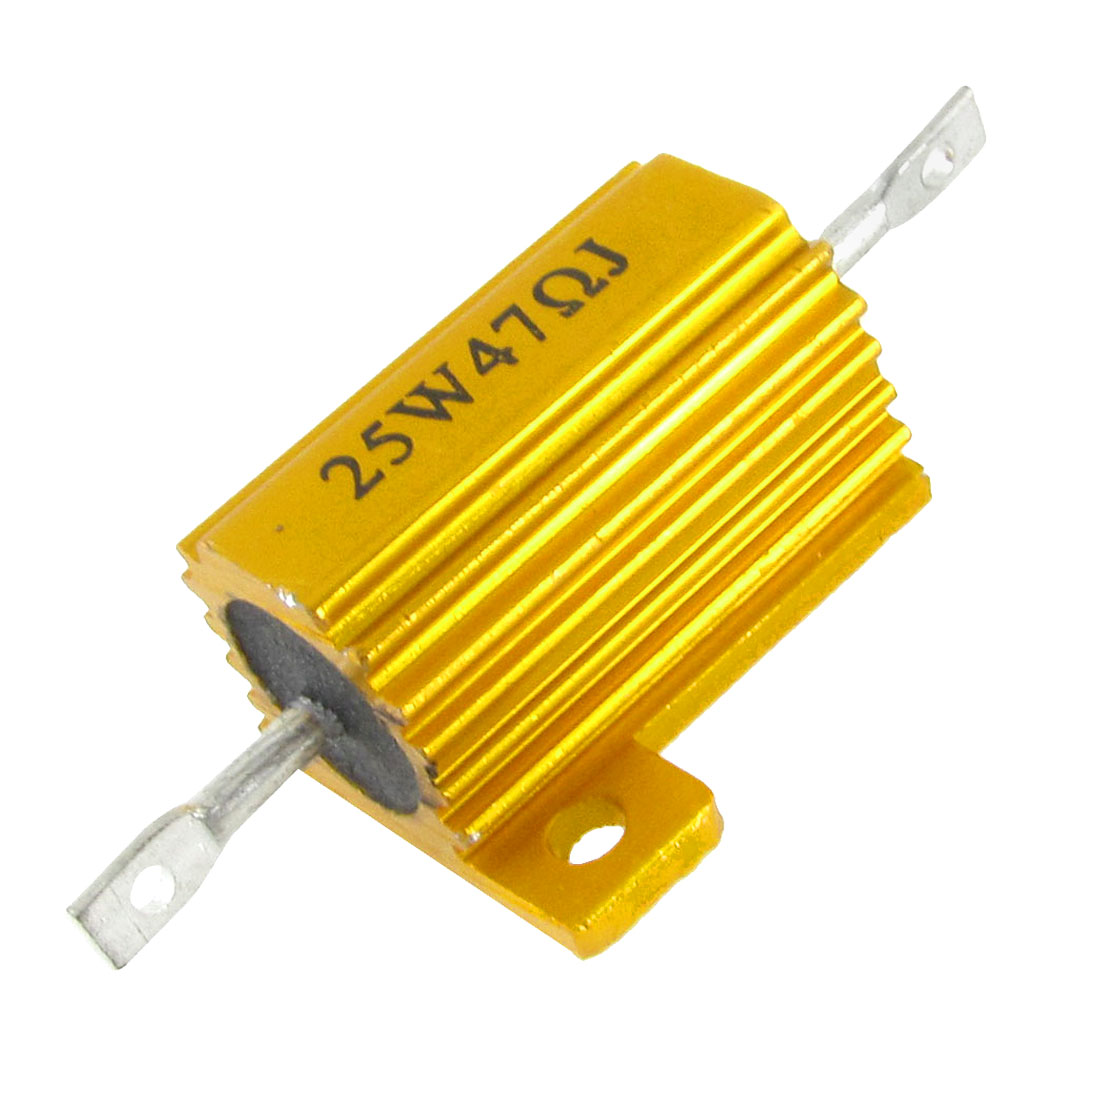 Chasis Mounted 25W 47 Ohm 5% Aluminum Housed Wirewound Resistor Gold Tone